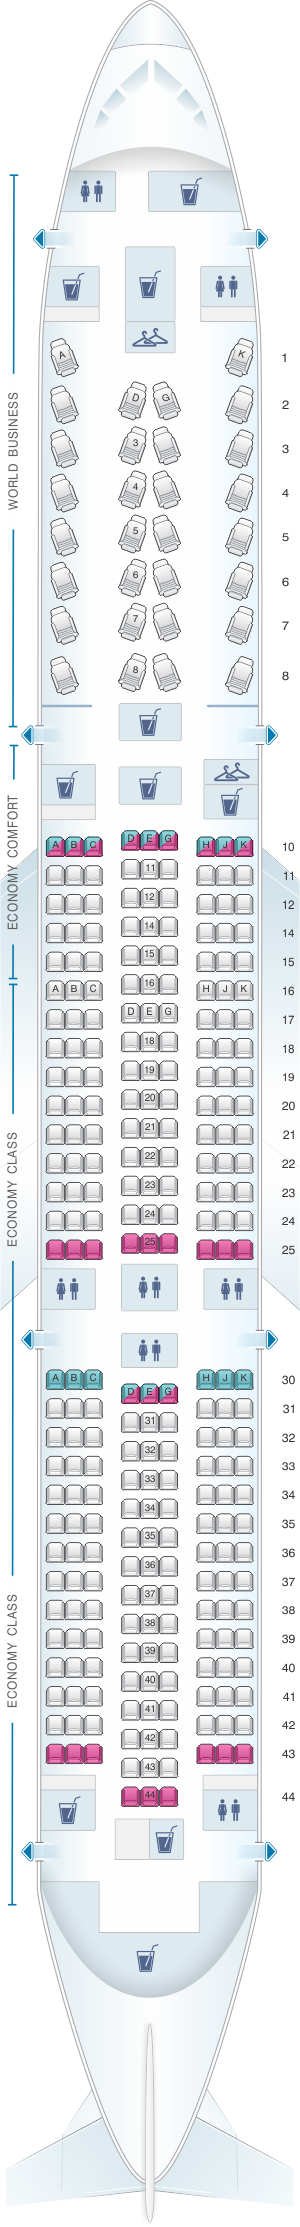 Seat map for KLM Boeing B787-9